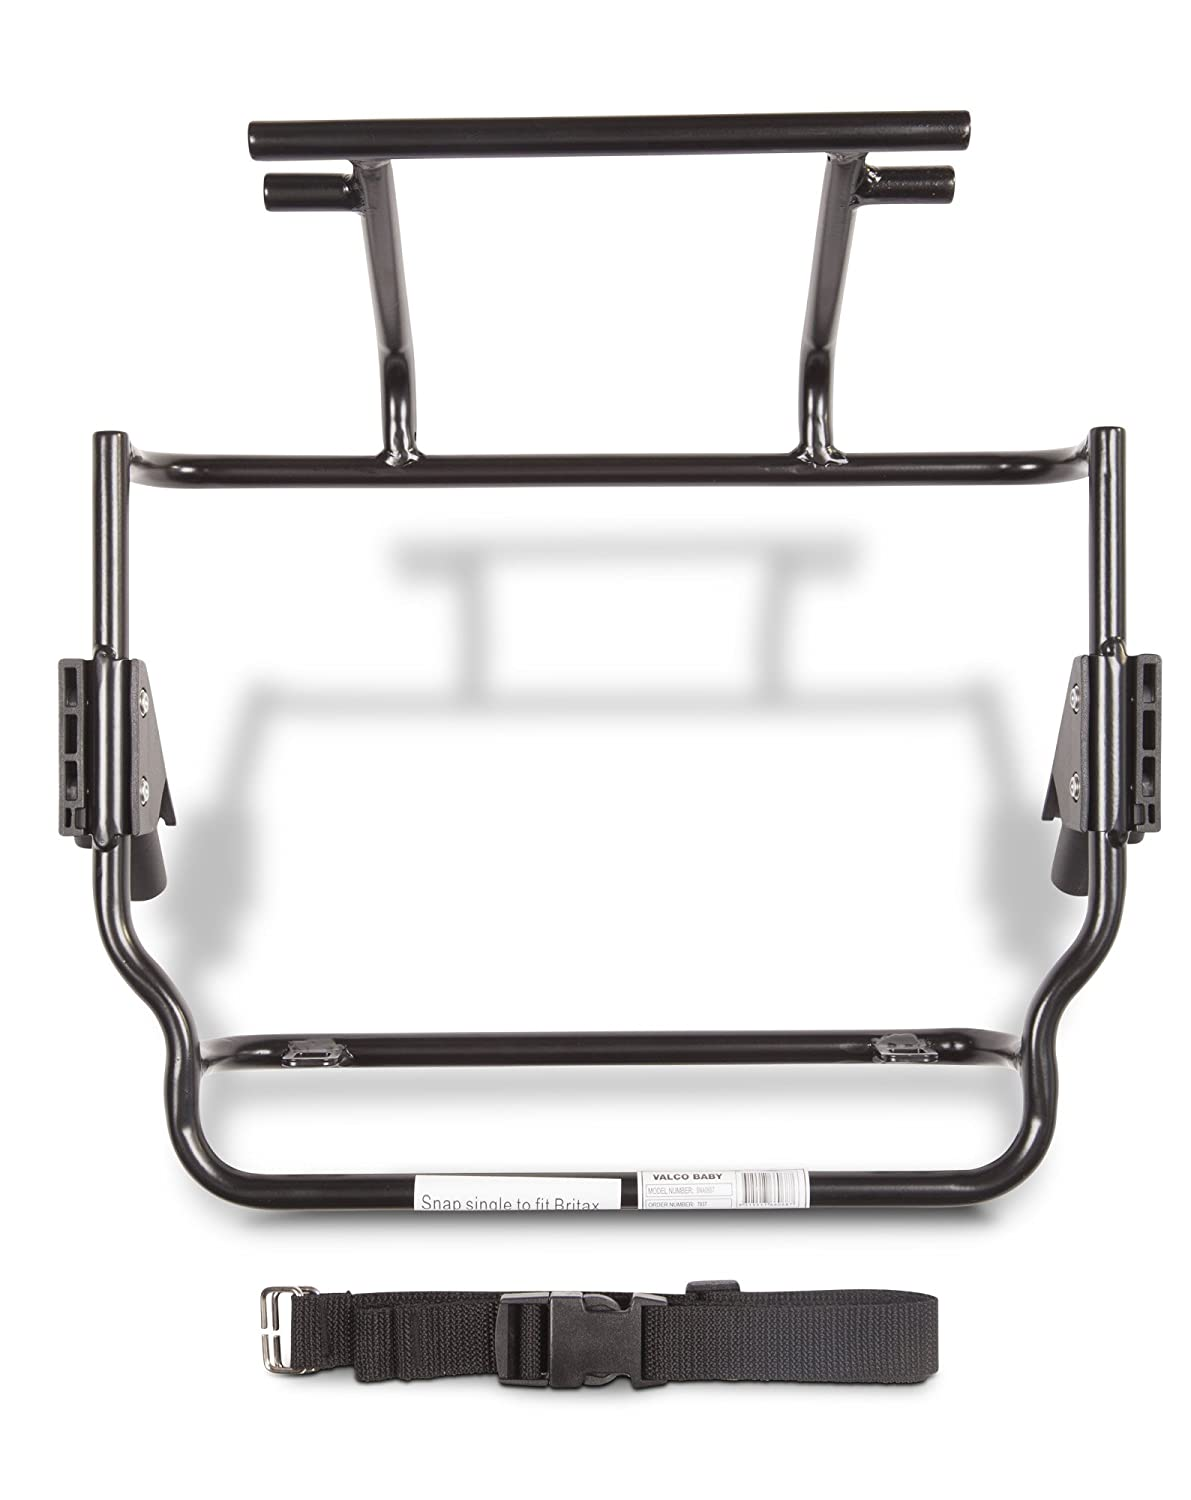 Valco Baby Snap & Snap4 (Single) Car Seat Adapter (Peg Perego)